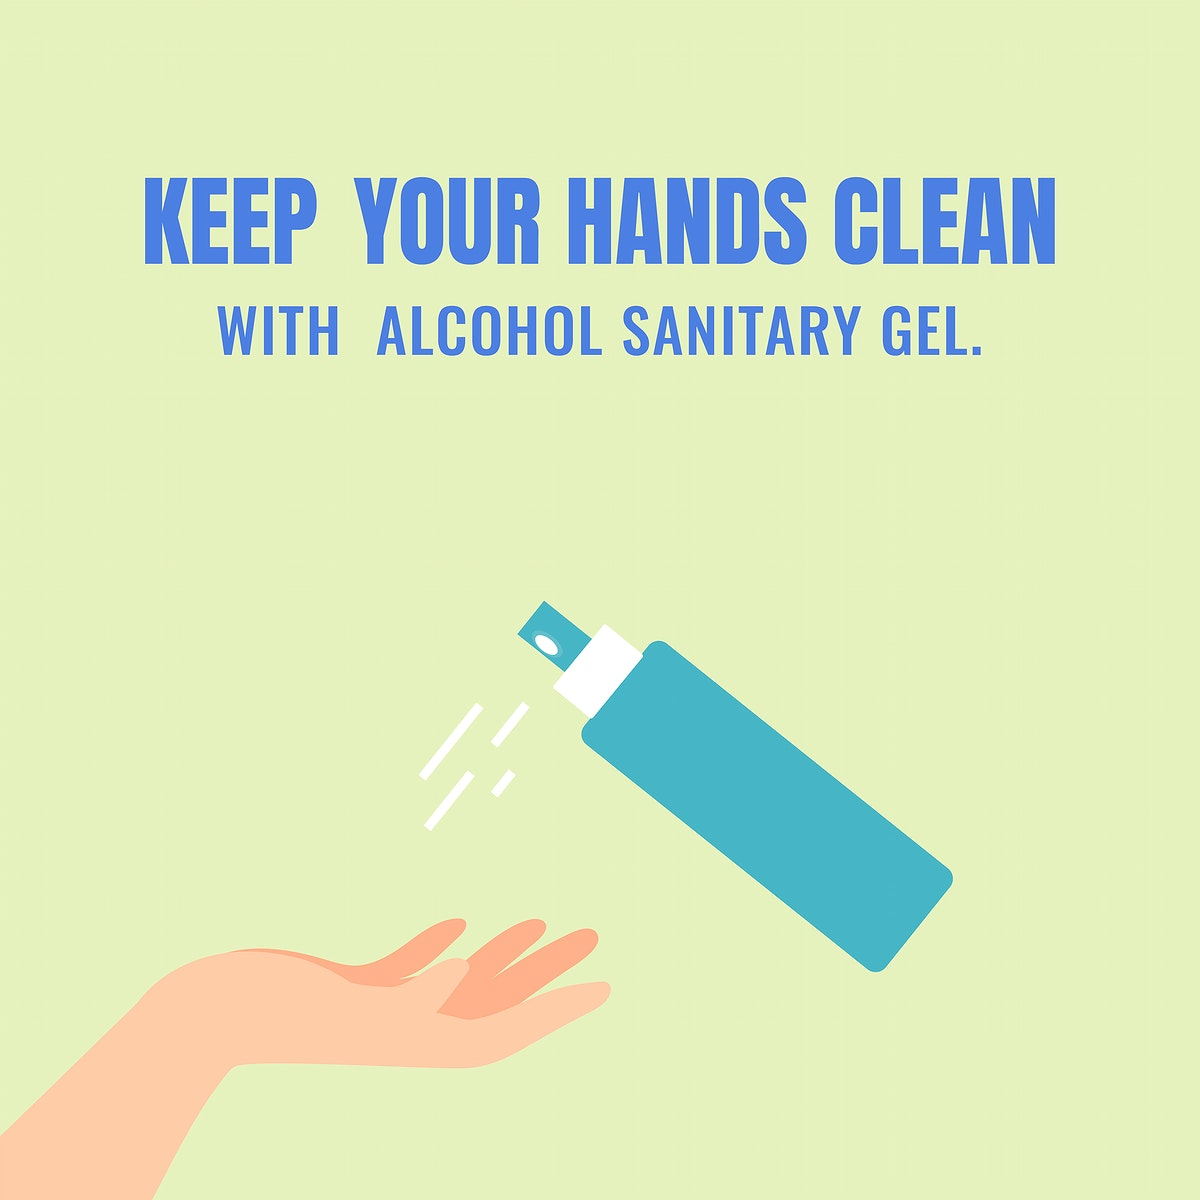 Keep your hands clean coronavirus protection template vector